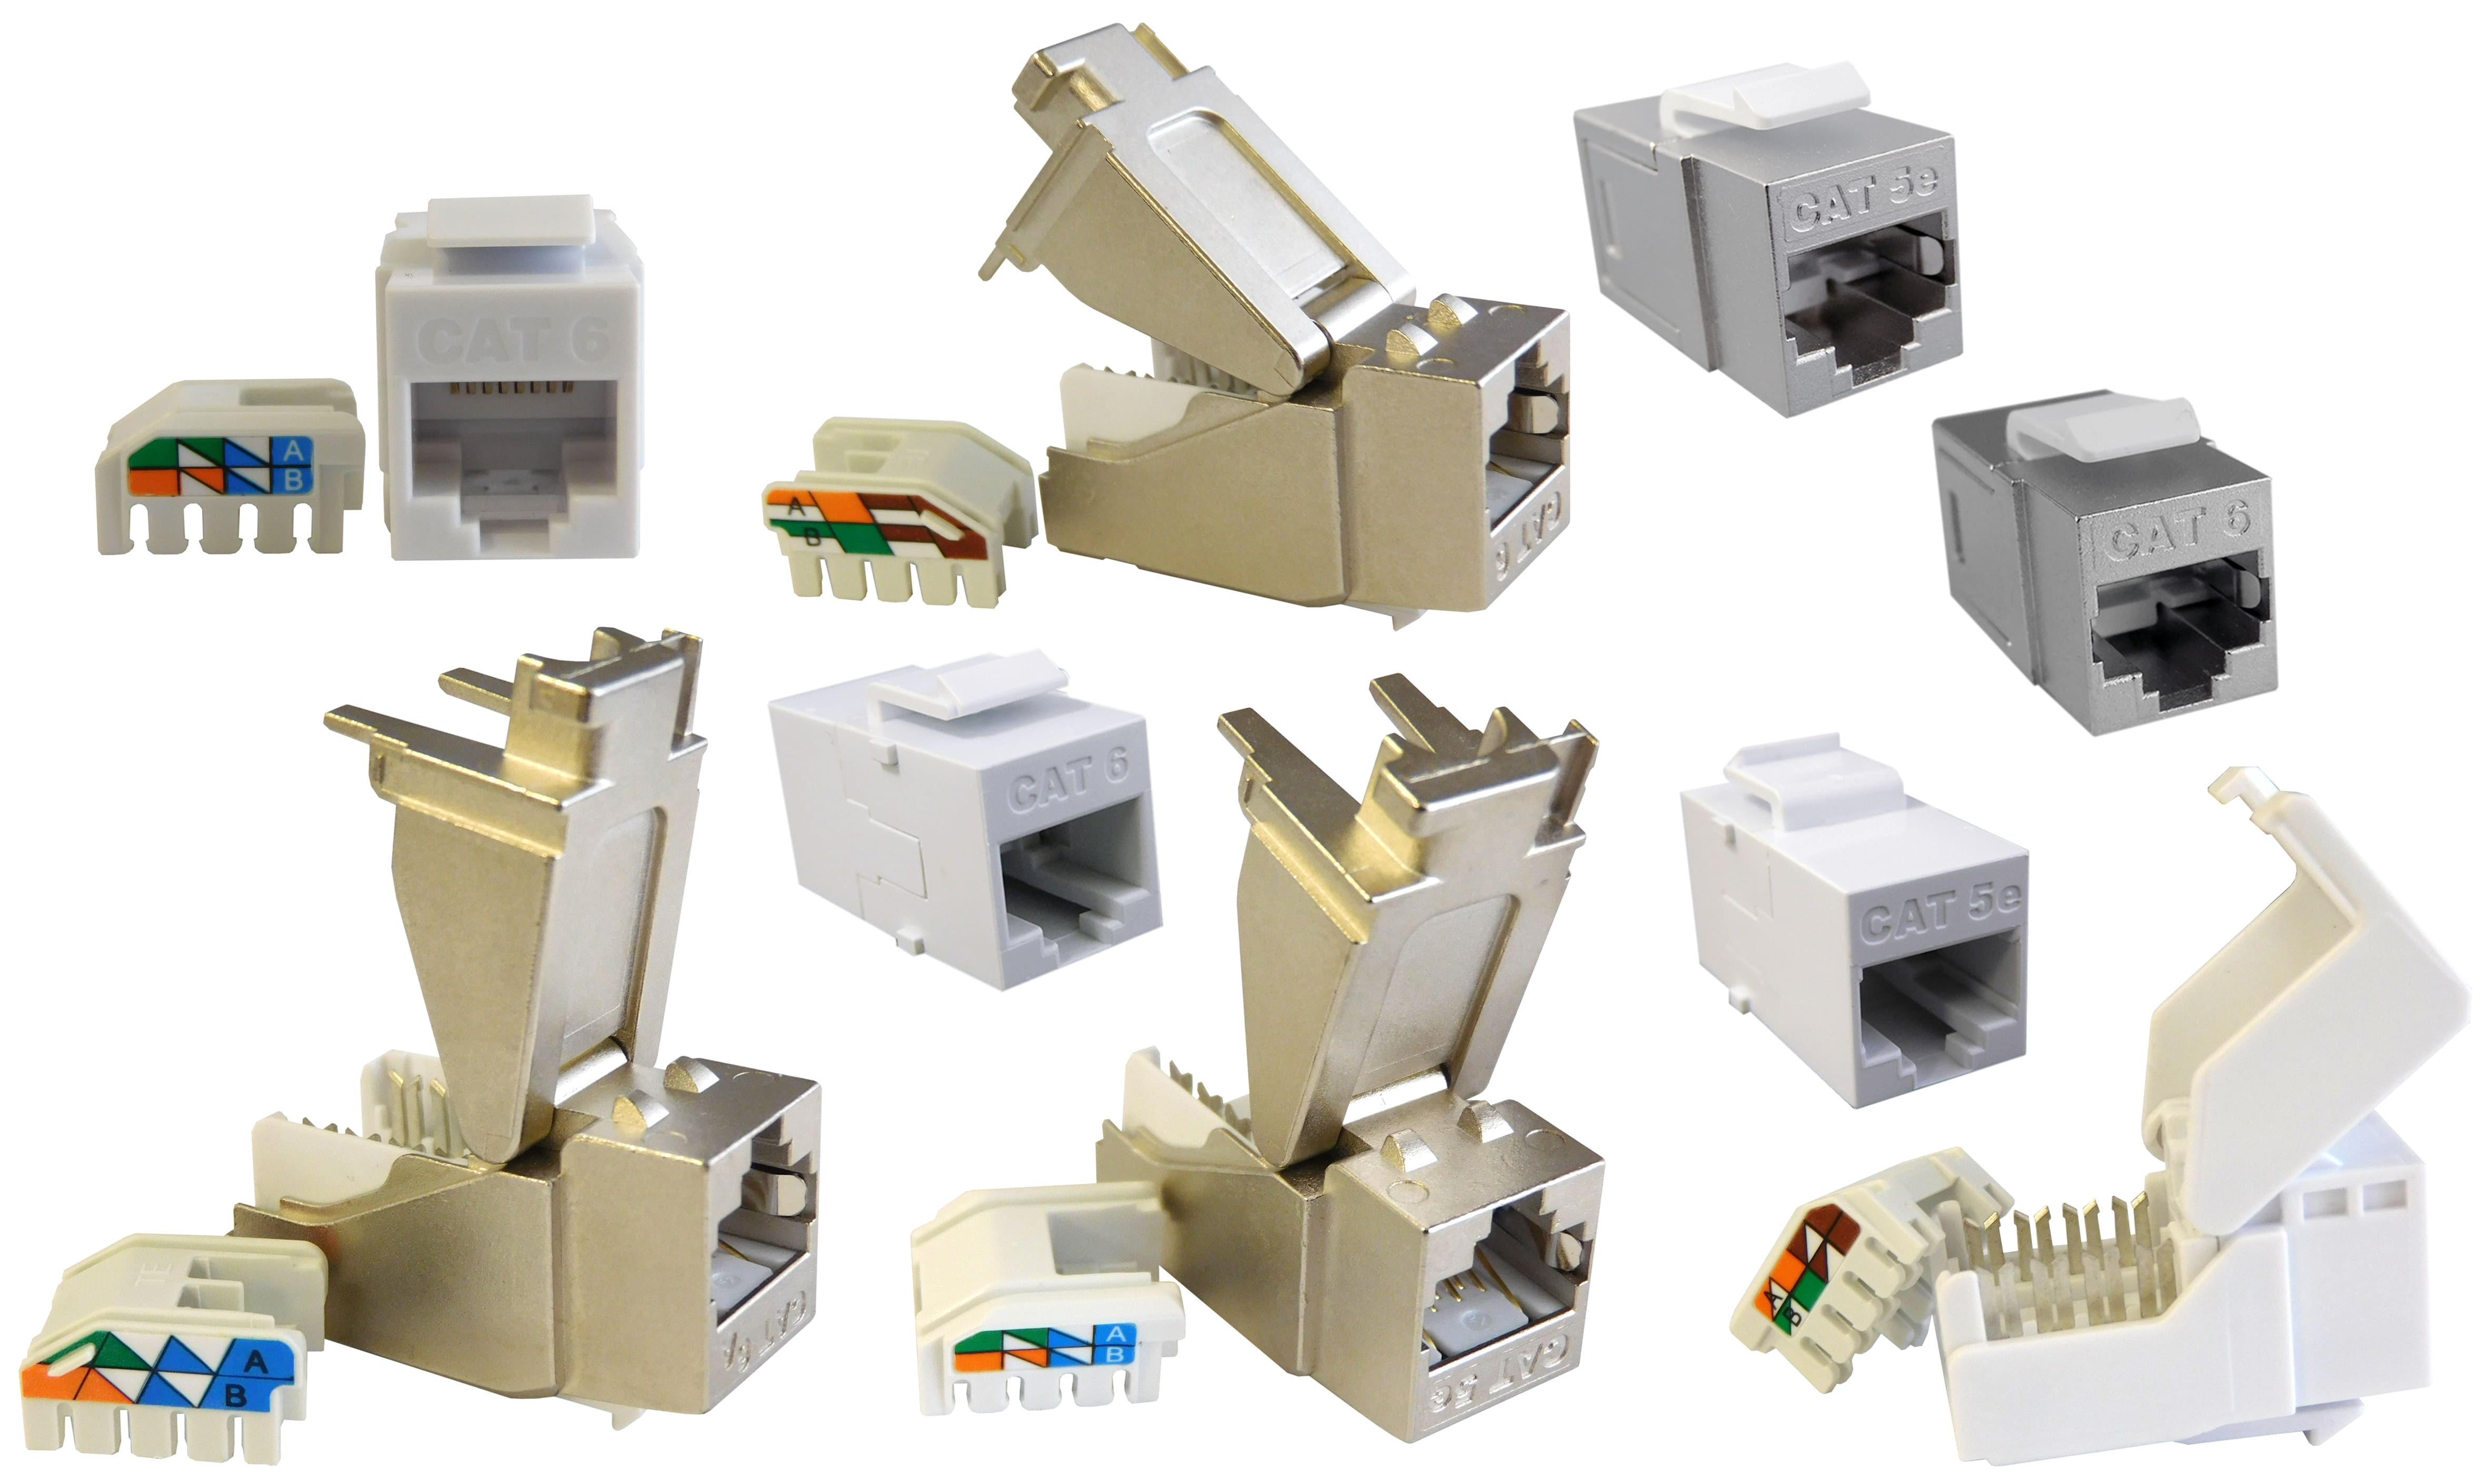 hight resolution of bel s cat5e cat6 and cat6a toolless plastic keystone jacks and couplers in shielded and unshielded configurations